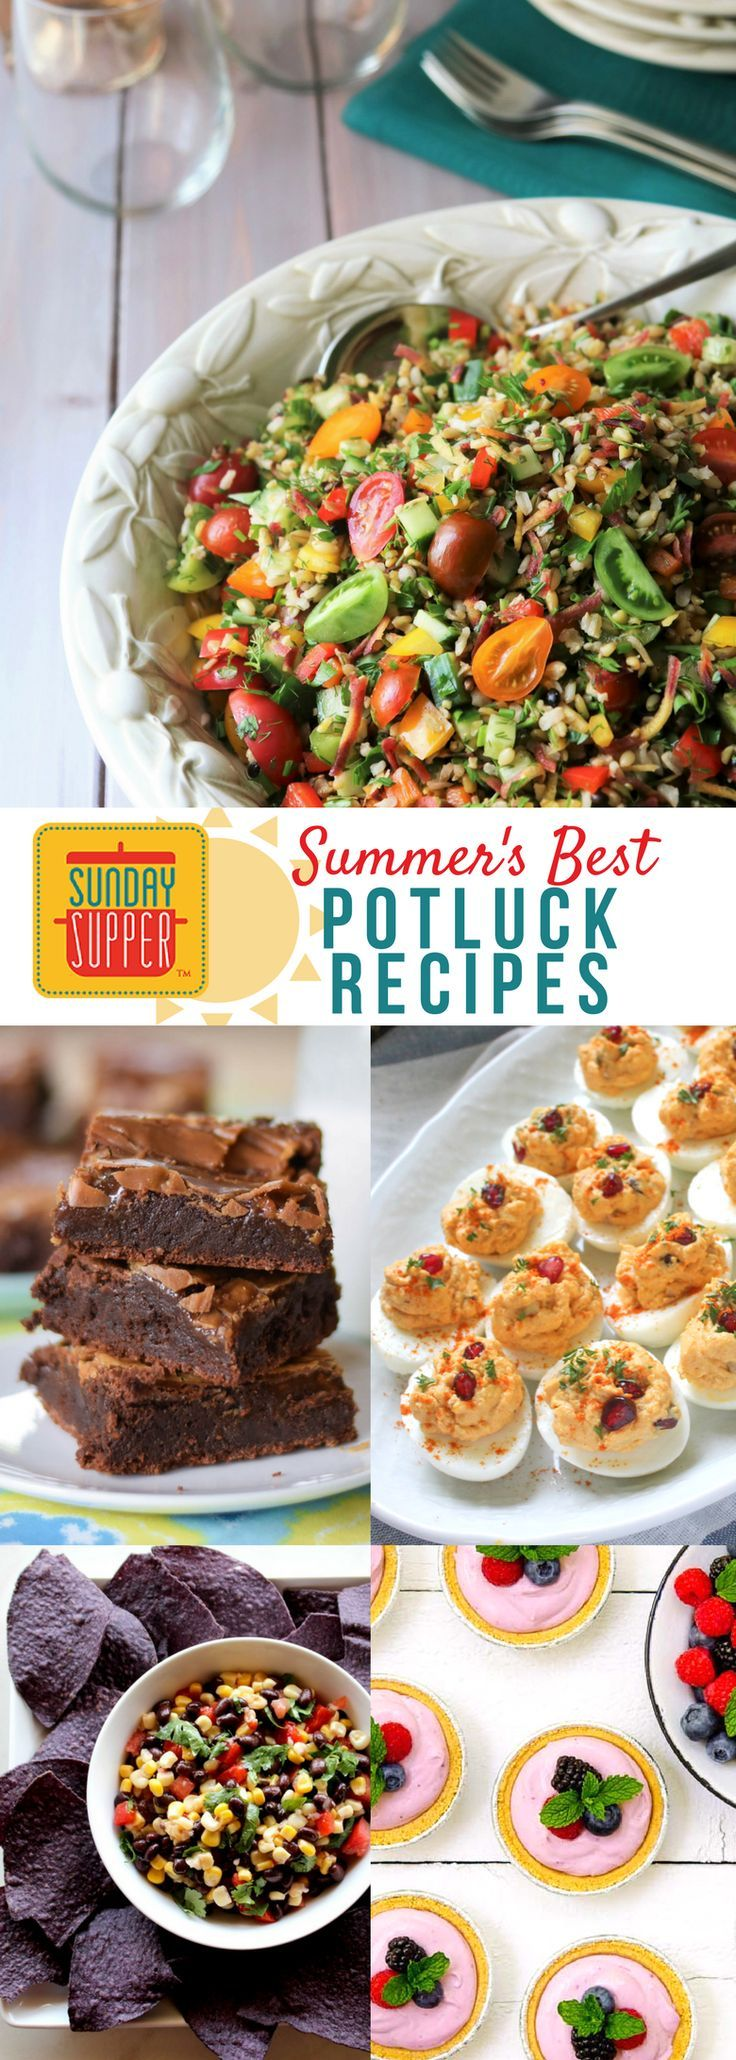 Summertime goes hand in hand with picnics, barbecues, and family reunions. In my experience, most of these events are potluck! Potluck means dishes are contributed by the guests at your gathering, so you are taking a chance that the recipes will be good. That's where the luck comes in. Some of the best potluck recipes we have ever encountered are dishes that someone else brought to the potluck! #SundaySupper